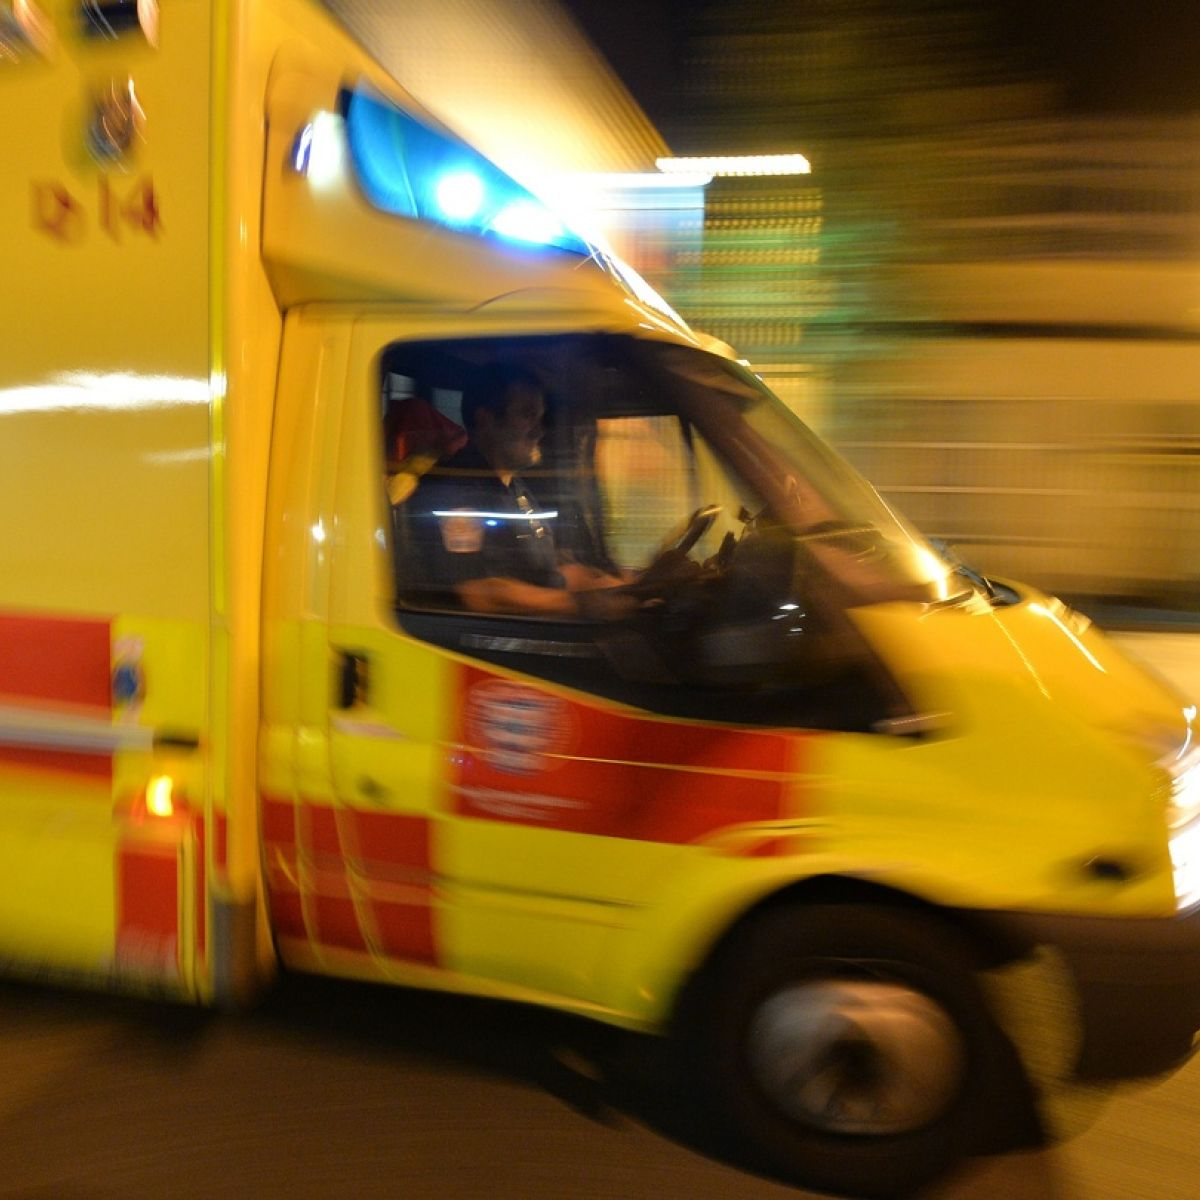 Third of A&E attendances on Saturday nights are alcohol related